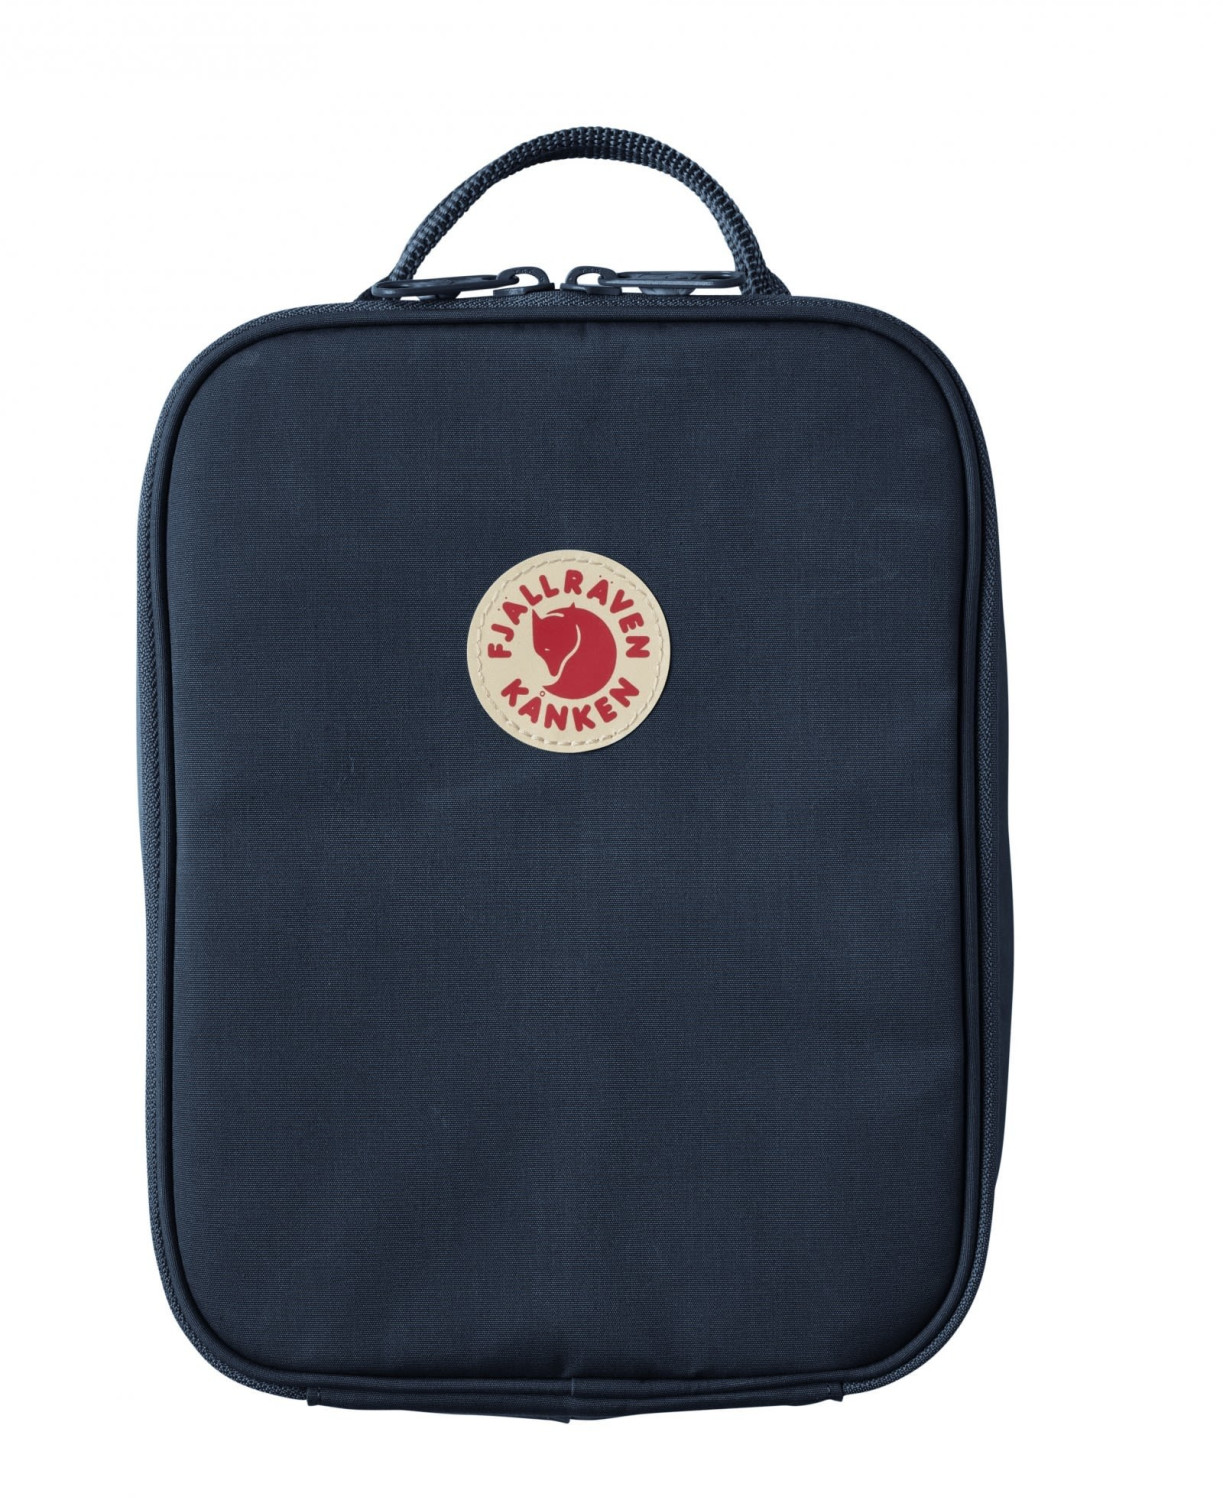 Image of Fjällräven Kånken Mini Cooler Navy